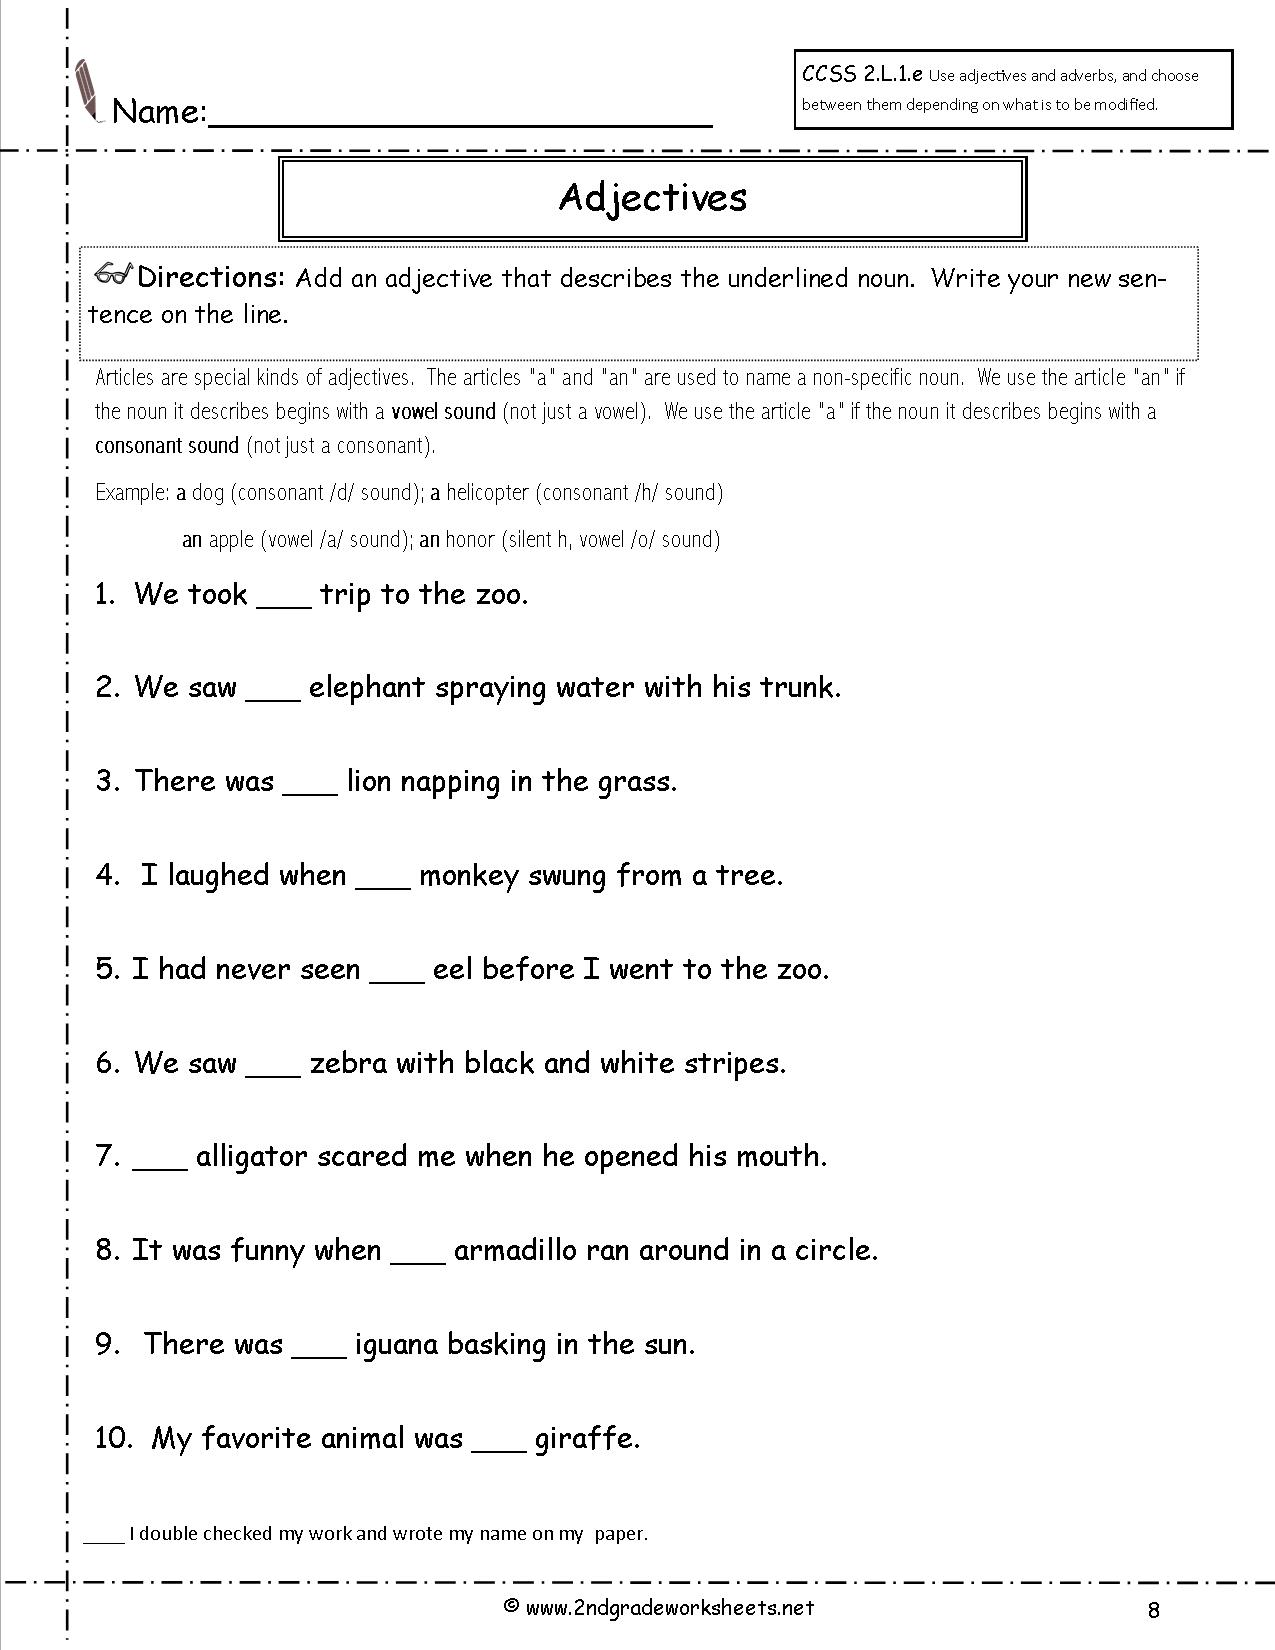 Worksheets English Test Grade  2 second grade esl test worksheets english 2 4 pages free using adjectives worksheets